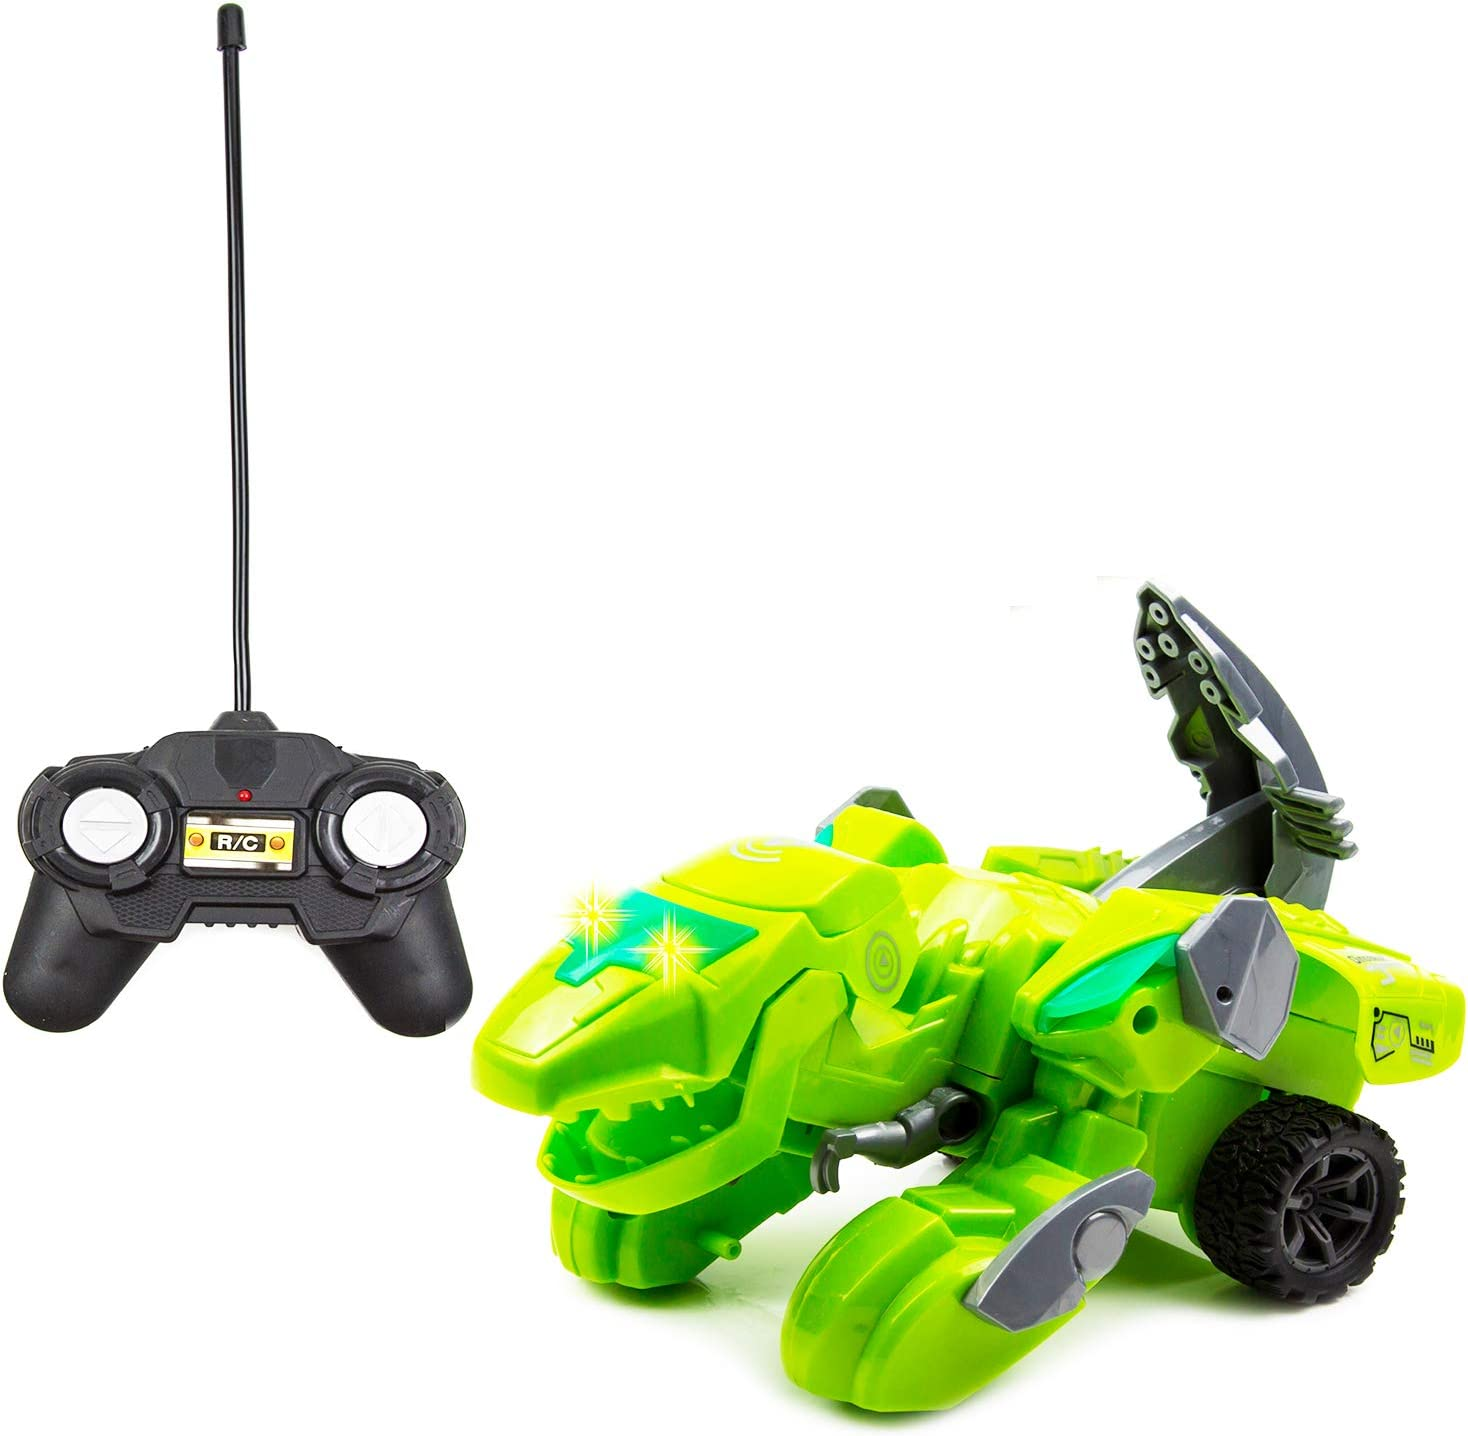 Toytykes Remote Control Dinosaur for Cars 70% OFF Outlet Kids Rc High quality new